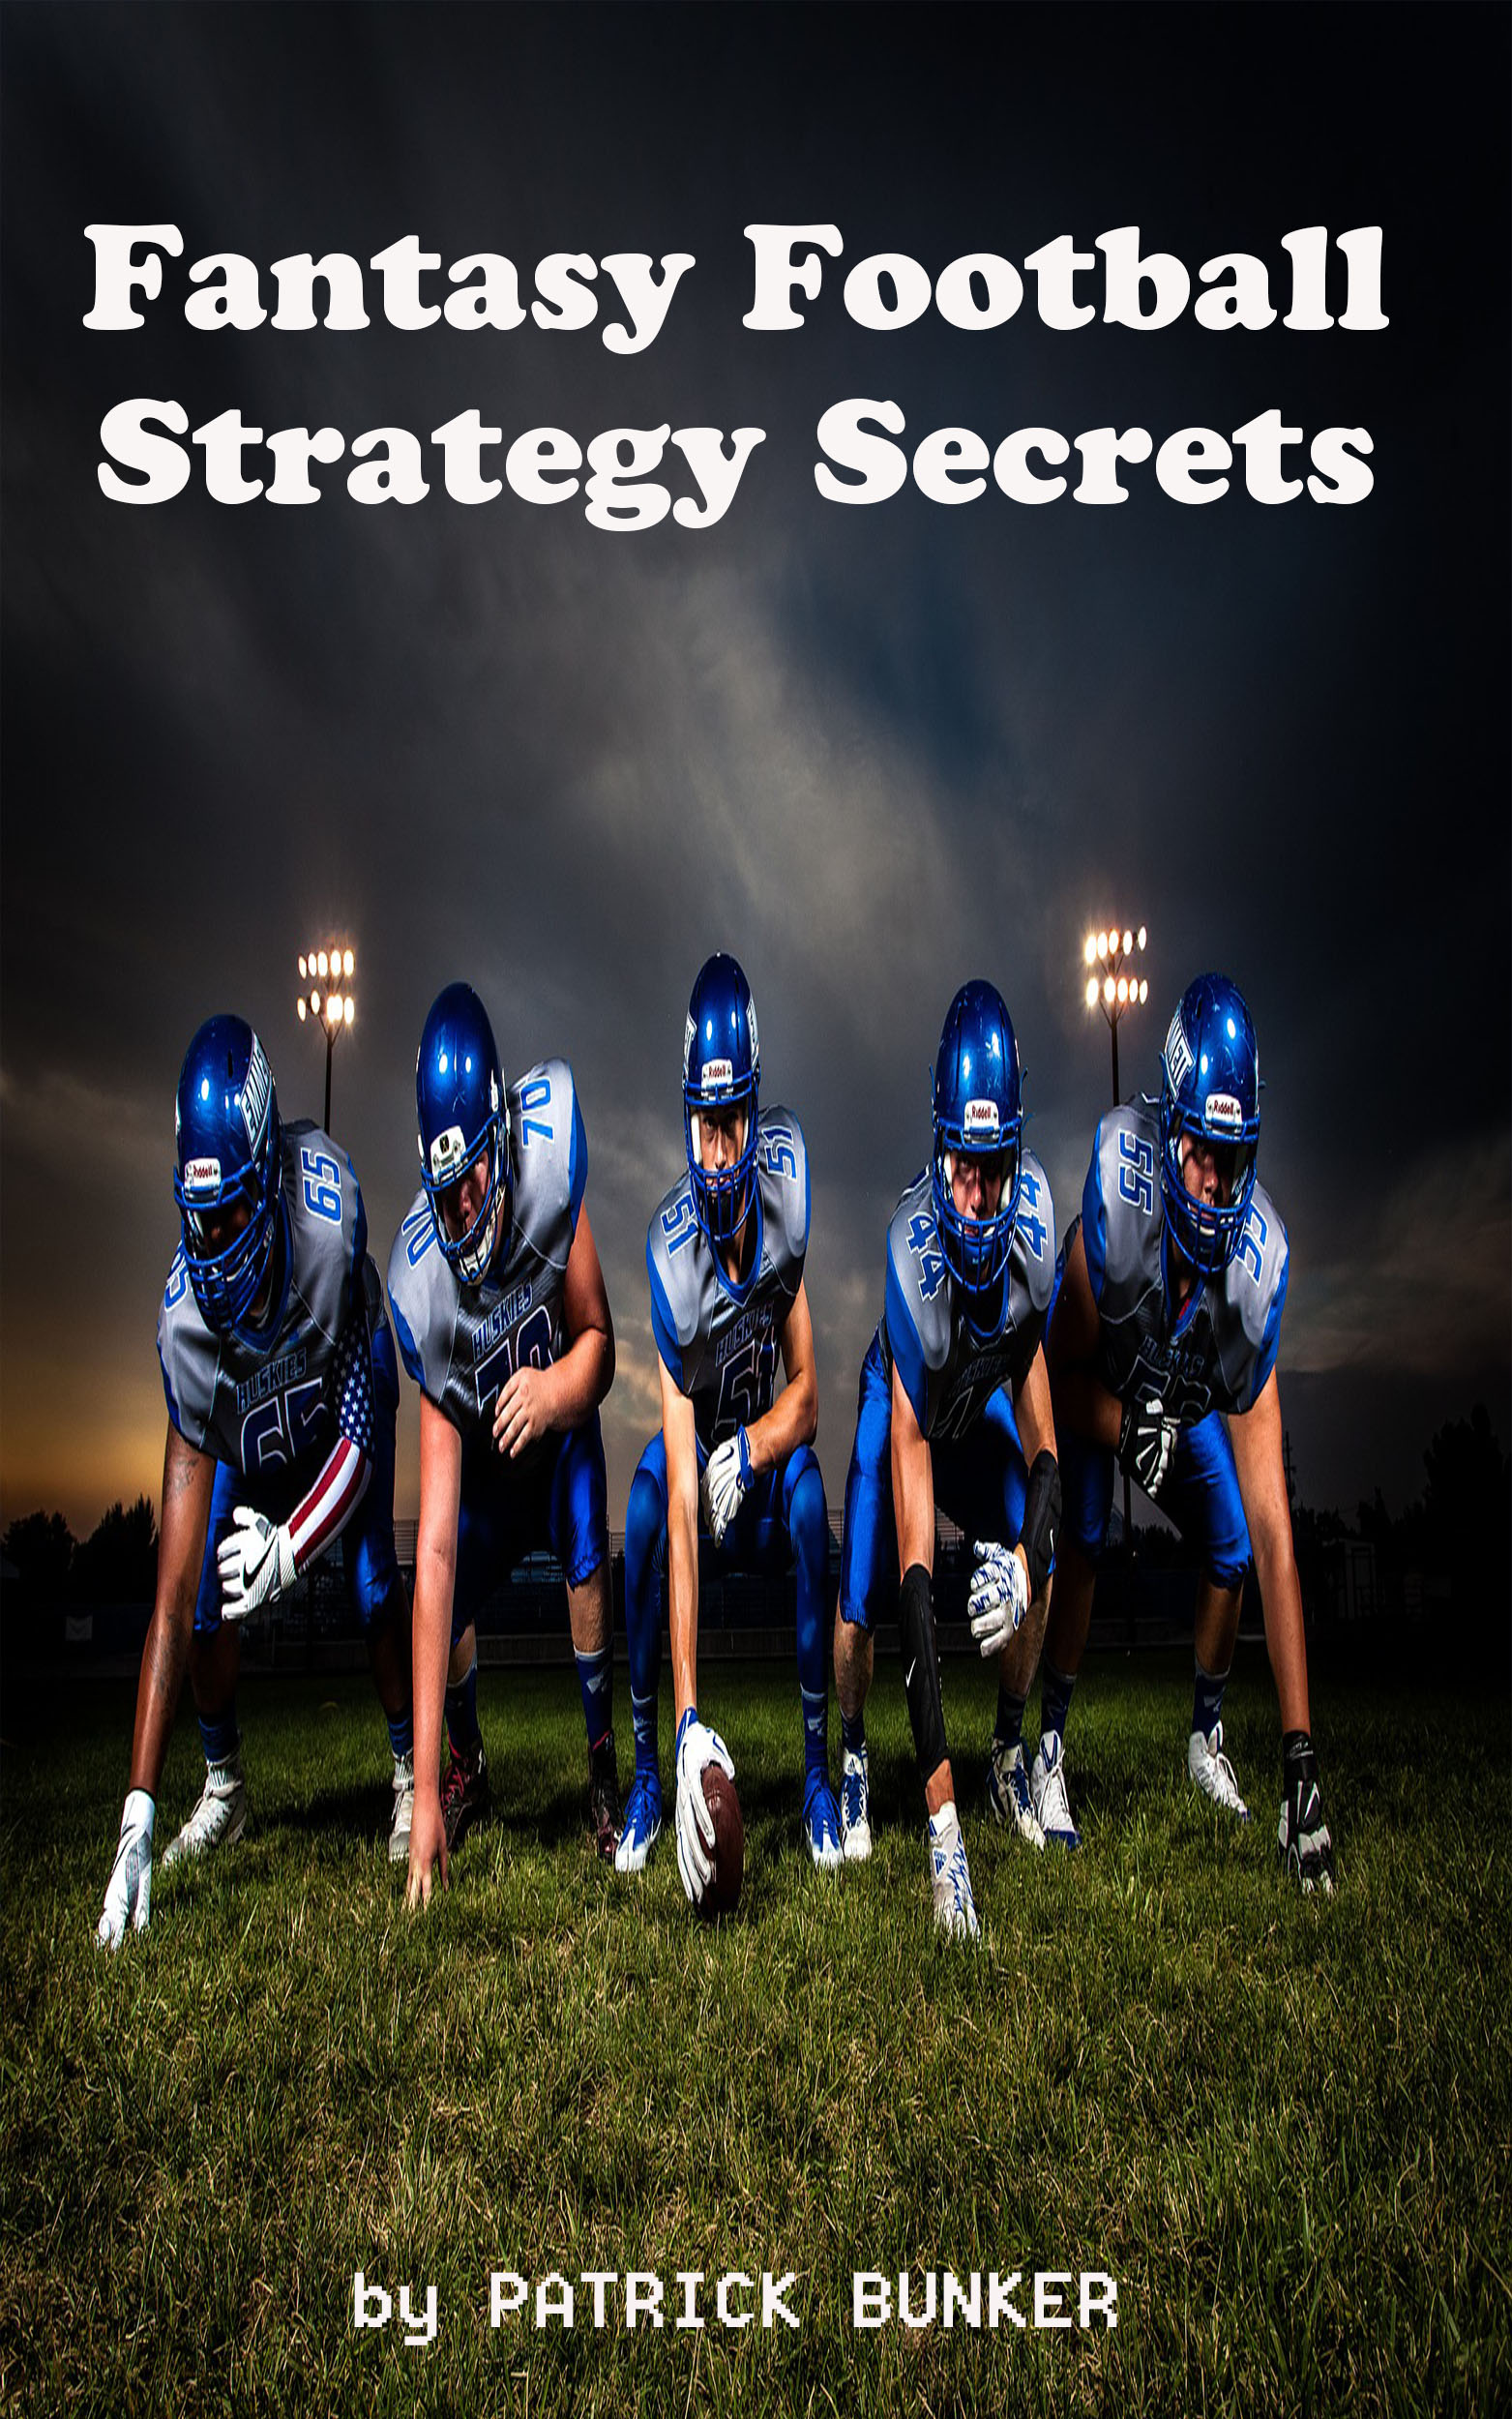 Fantasy Football Strategy Secrets, an Ebook by Patrick Bunker